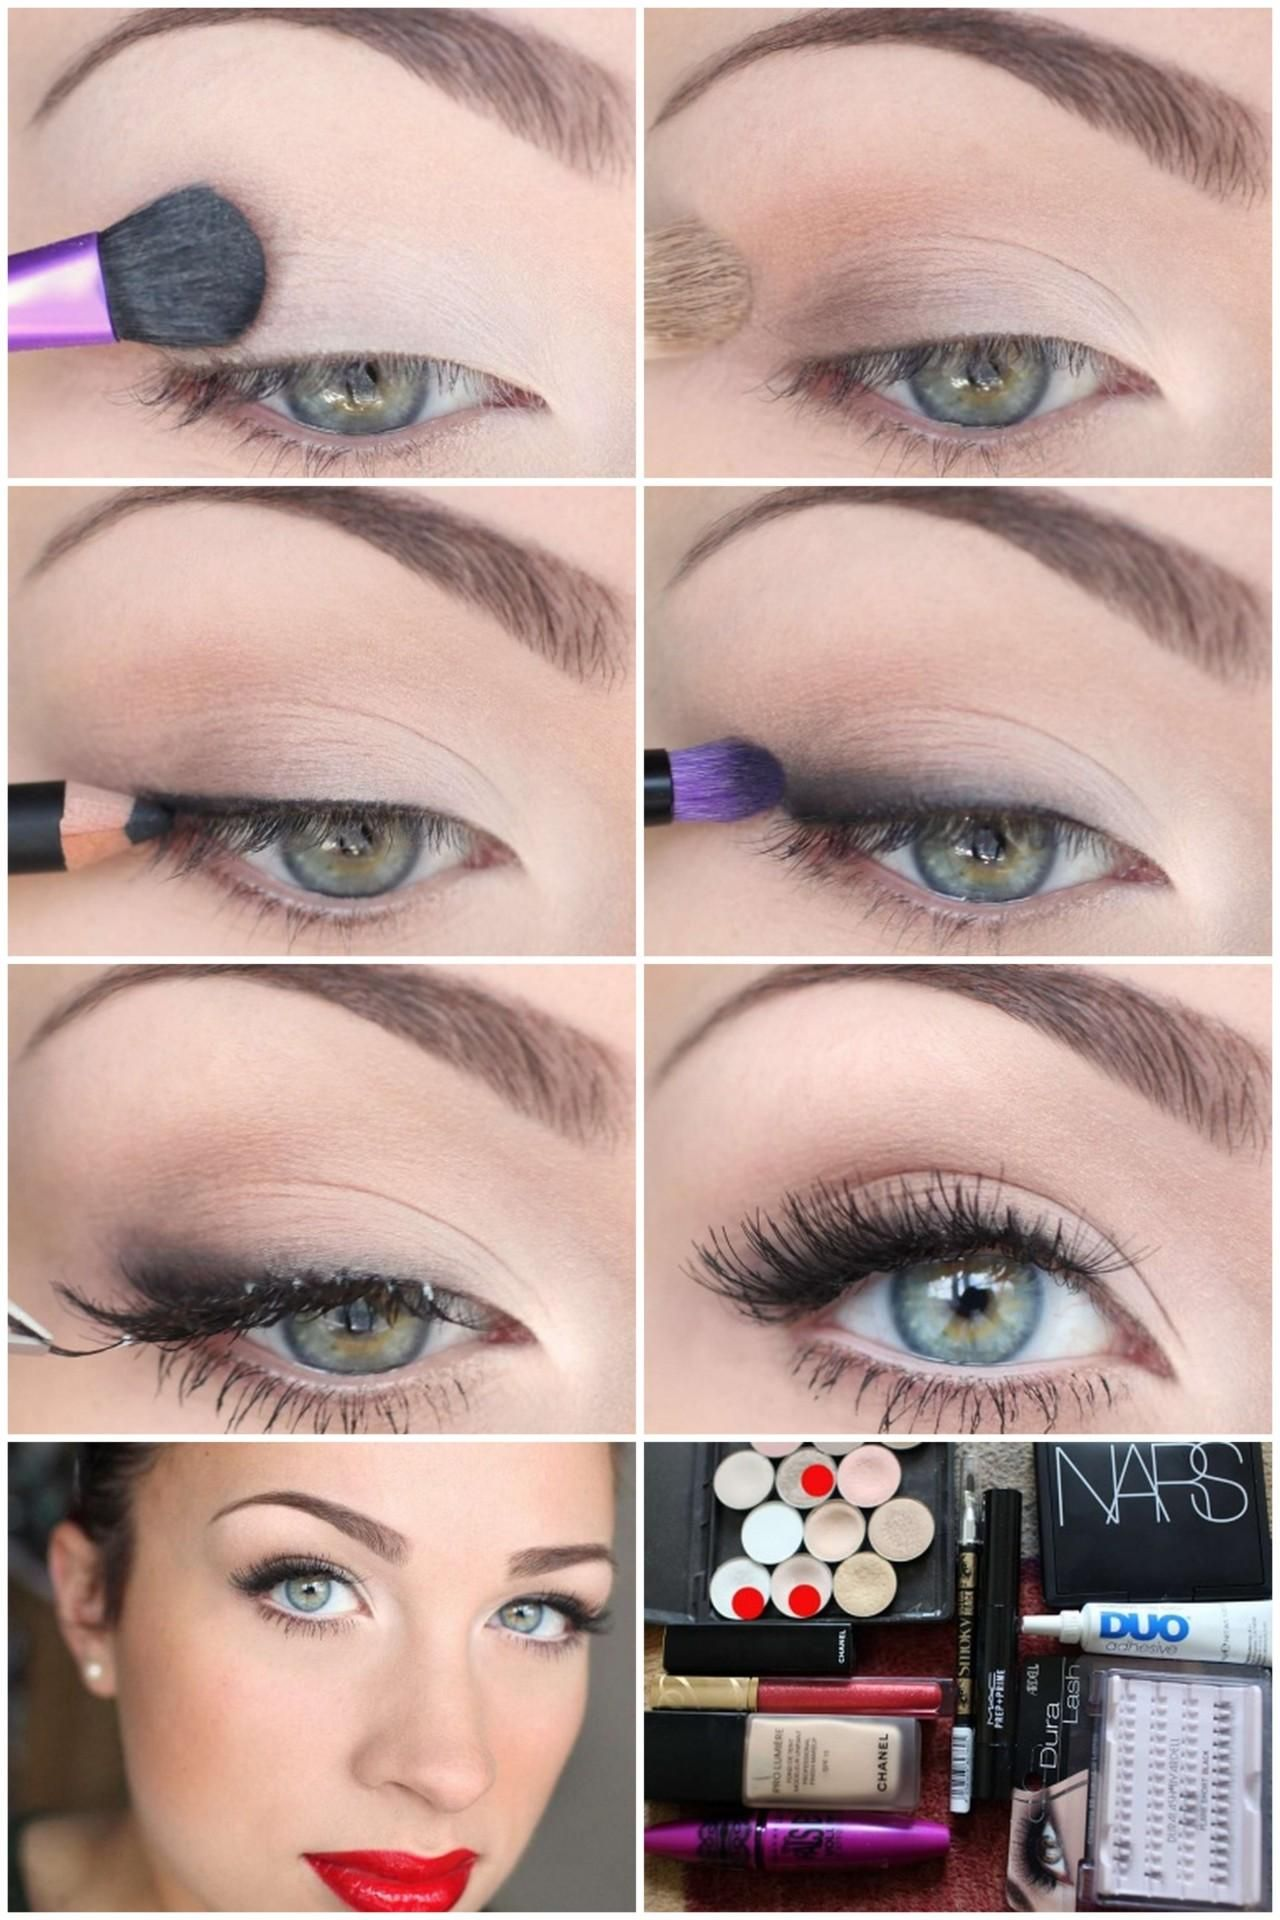 Howtoputeyelashes Makeup Pinterest Makeup Natural Makeup